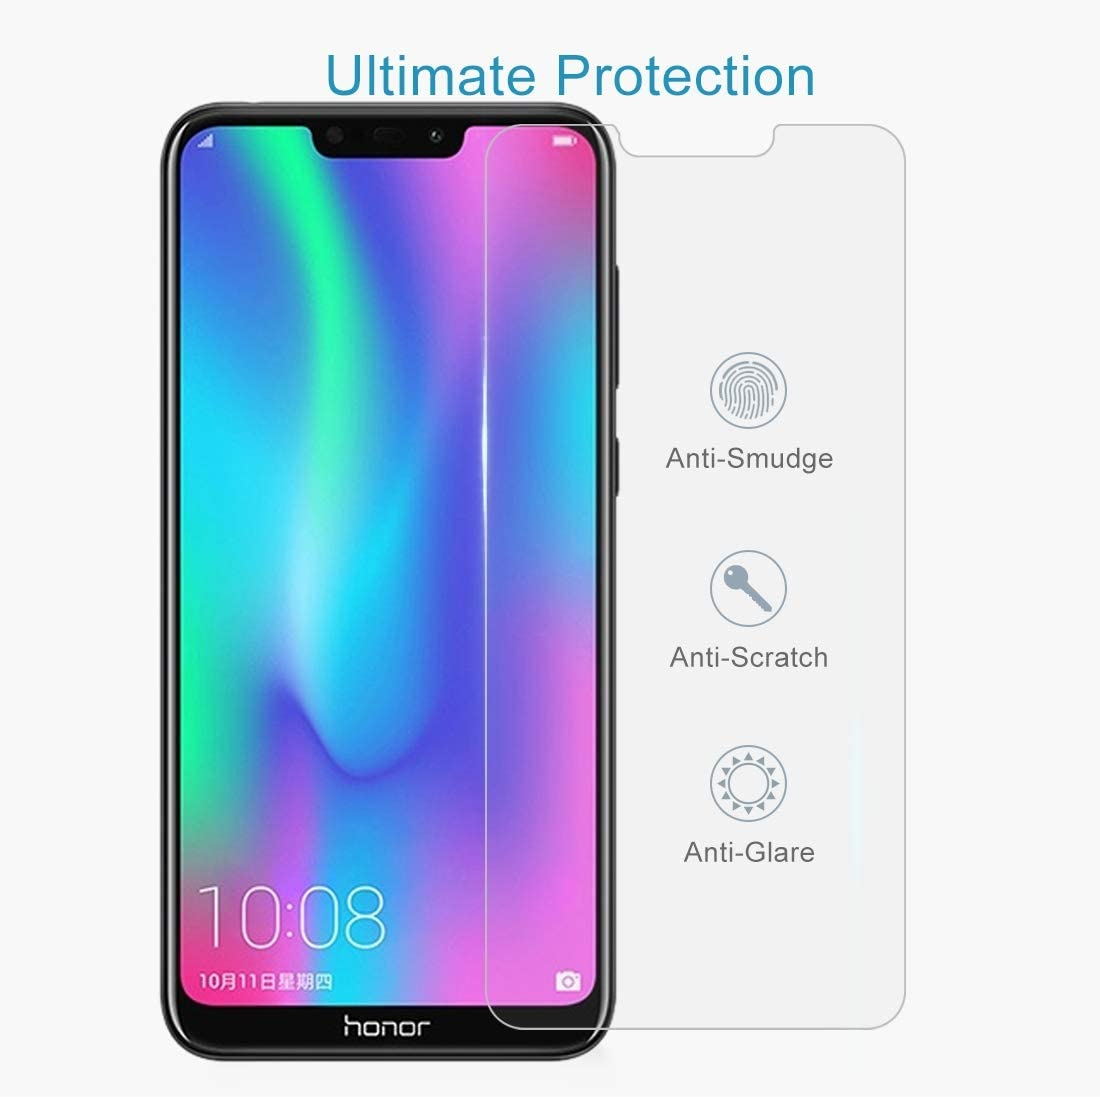 Super Clear and dura 100 PCS 0.26mm 9H 2.5D Explosion-Proof Tempered Glass Film for Huawei Honor 8C yf Easy to Install